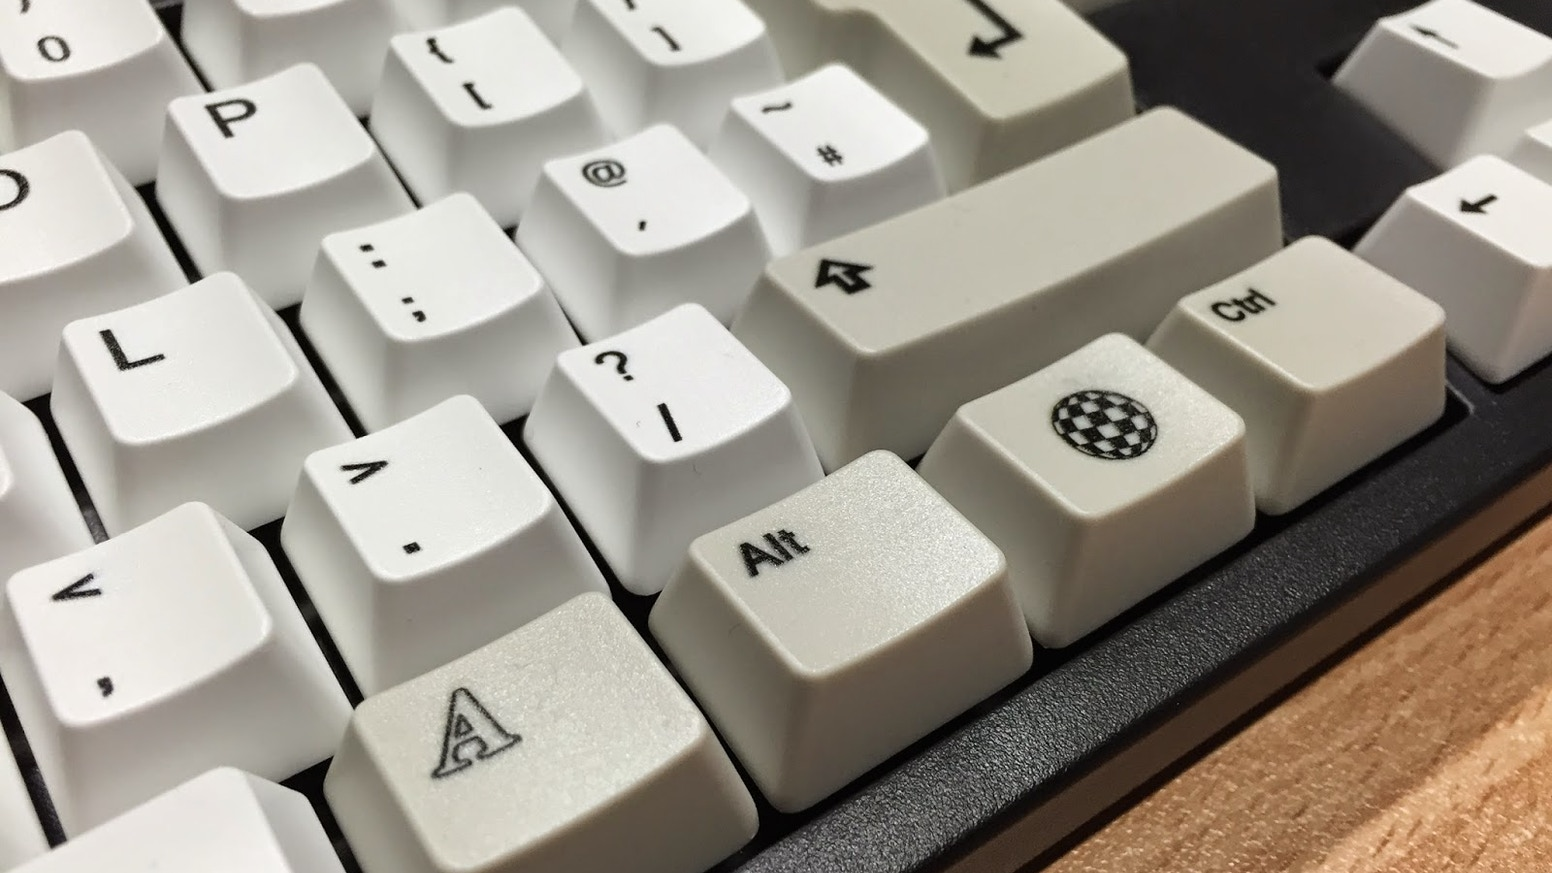 45c9e45438d Amiga inspired key caps for mechanical keyboards by Loriano Pagni ...